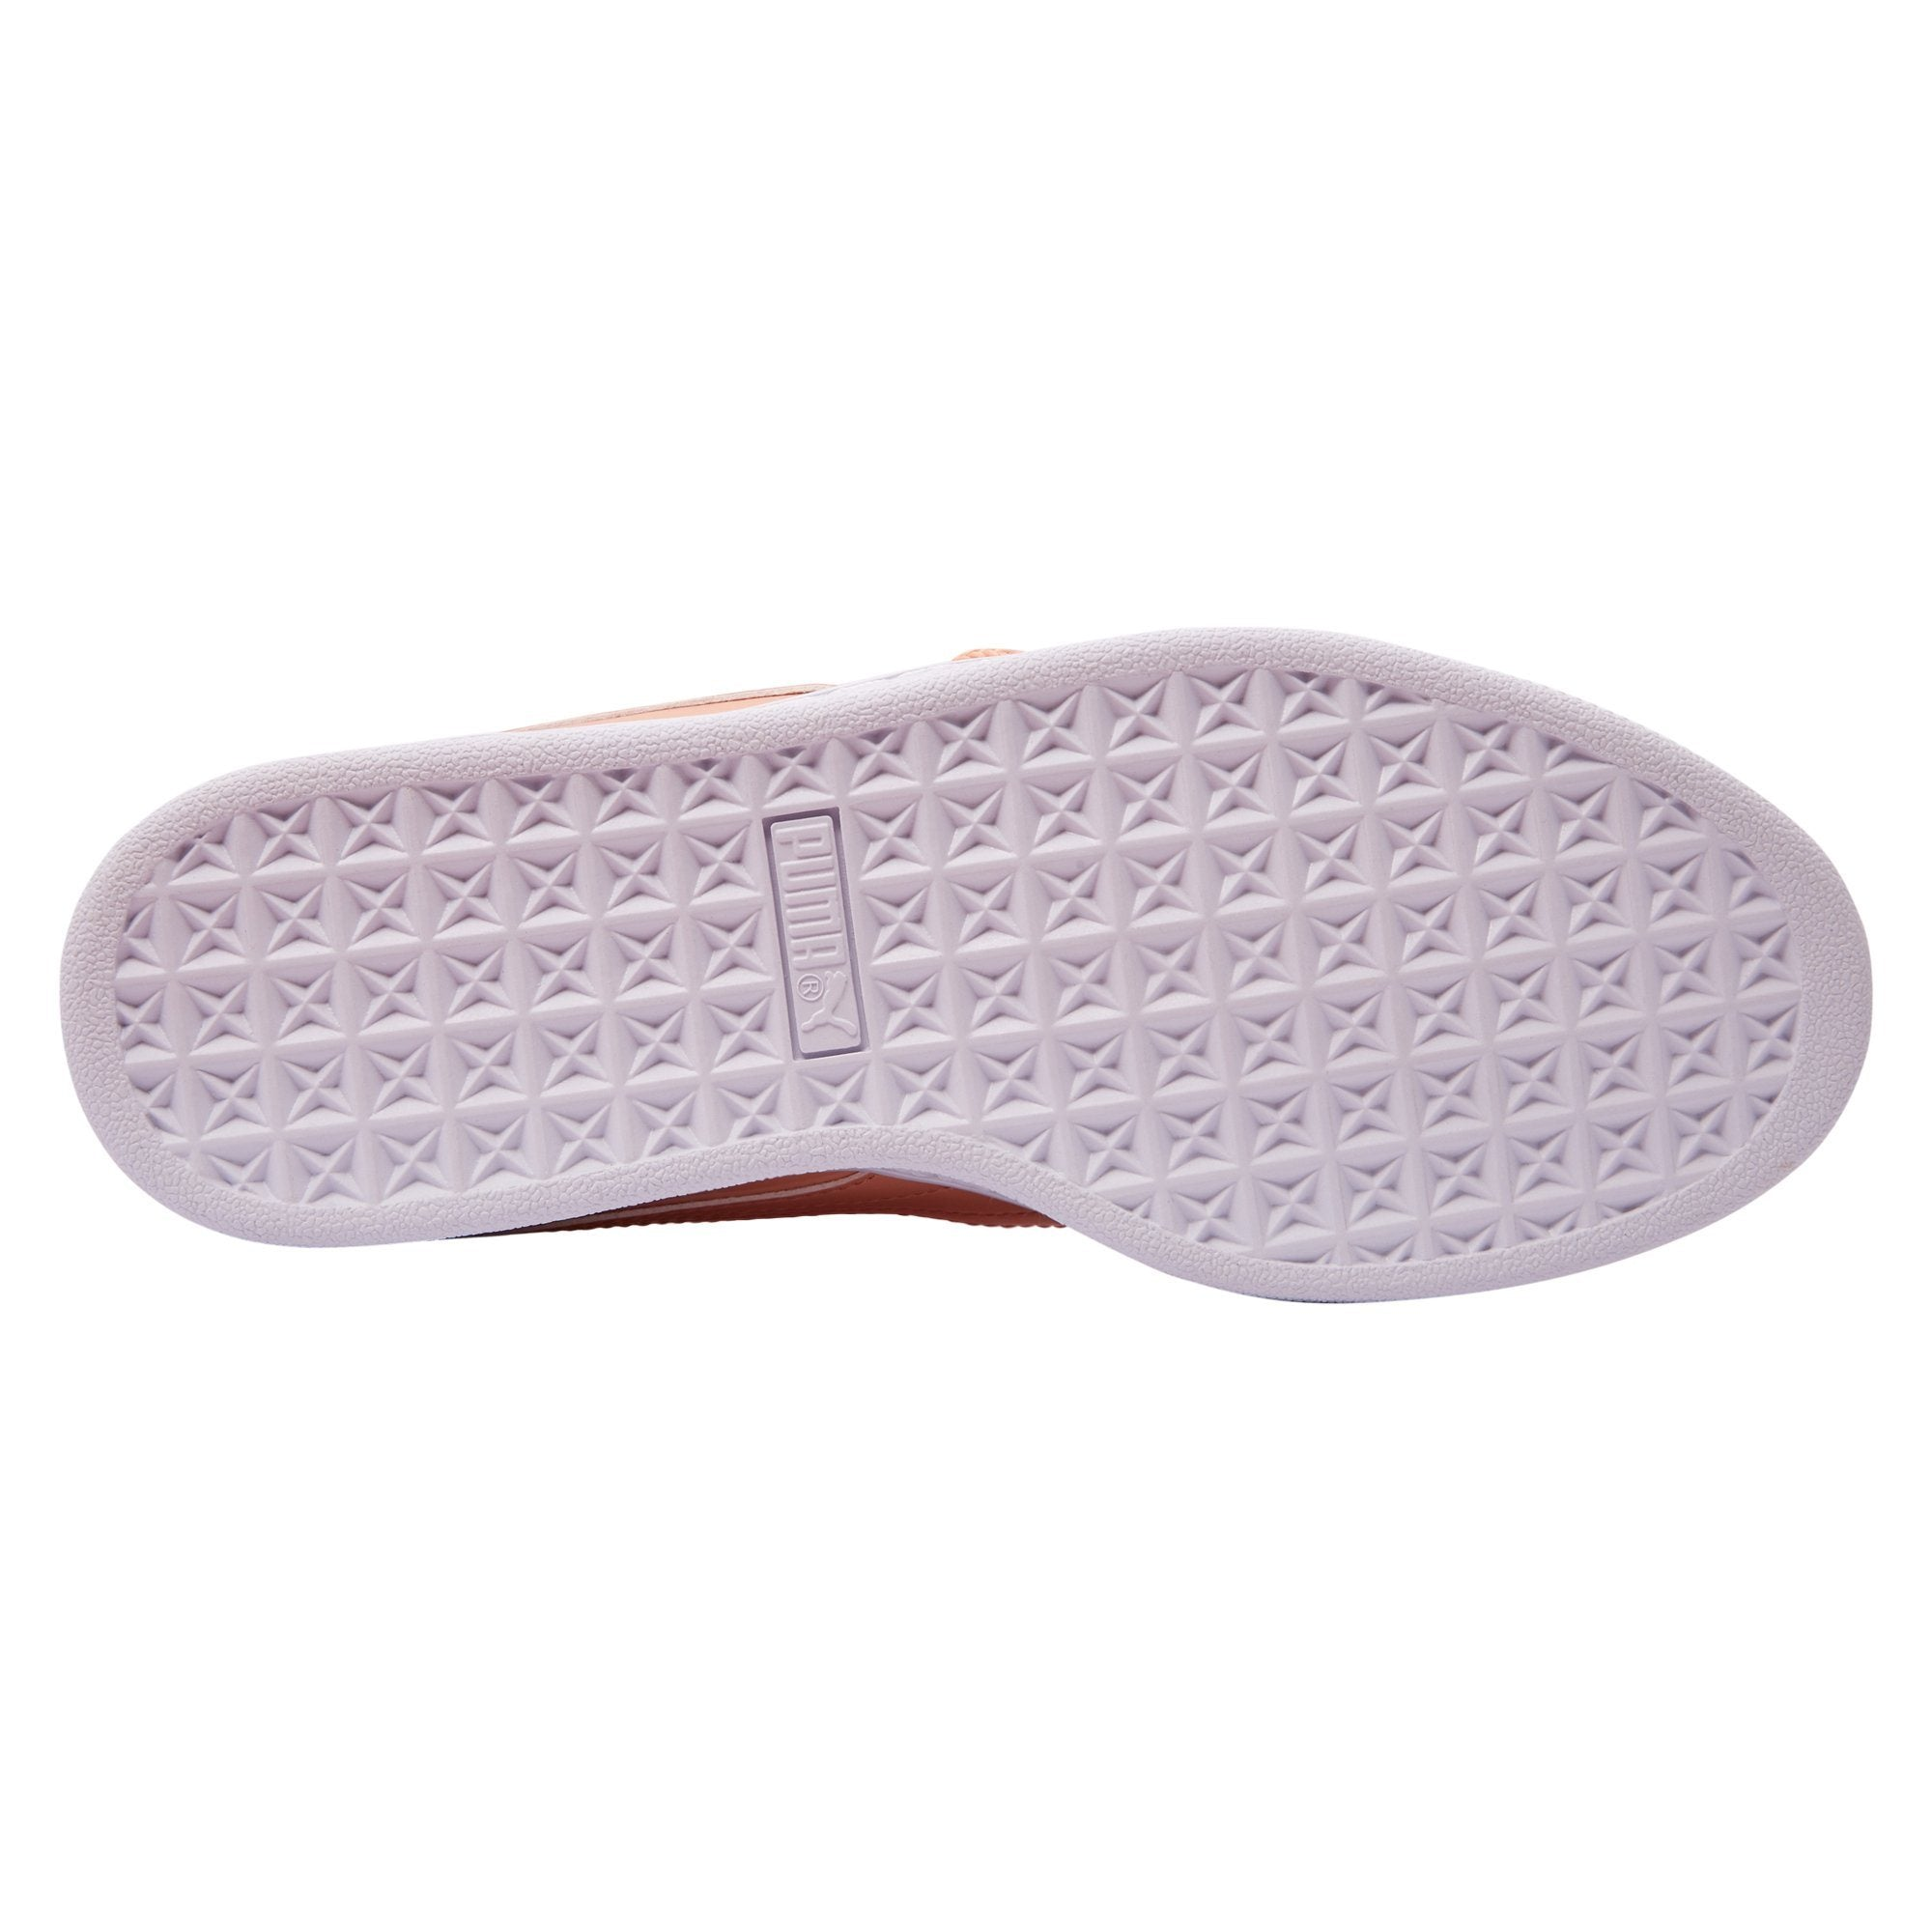 huge selection of 7f03e 21774 Puma Women's Basket Heart Patent - Coral